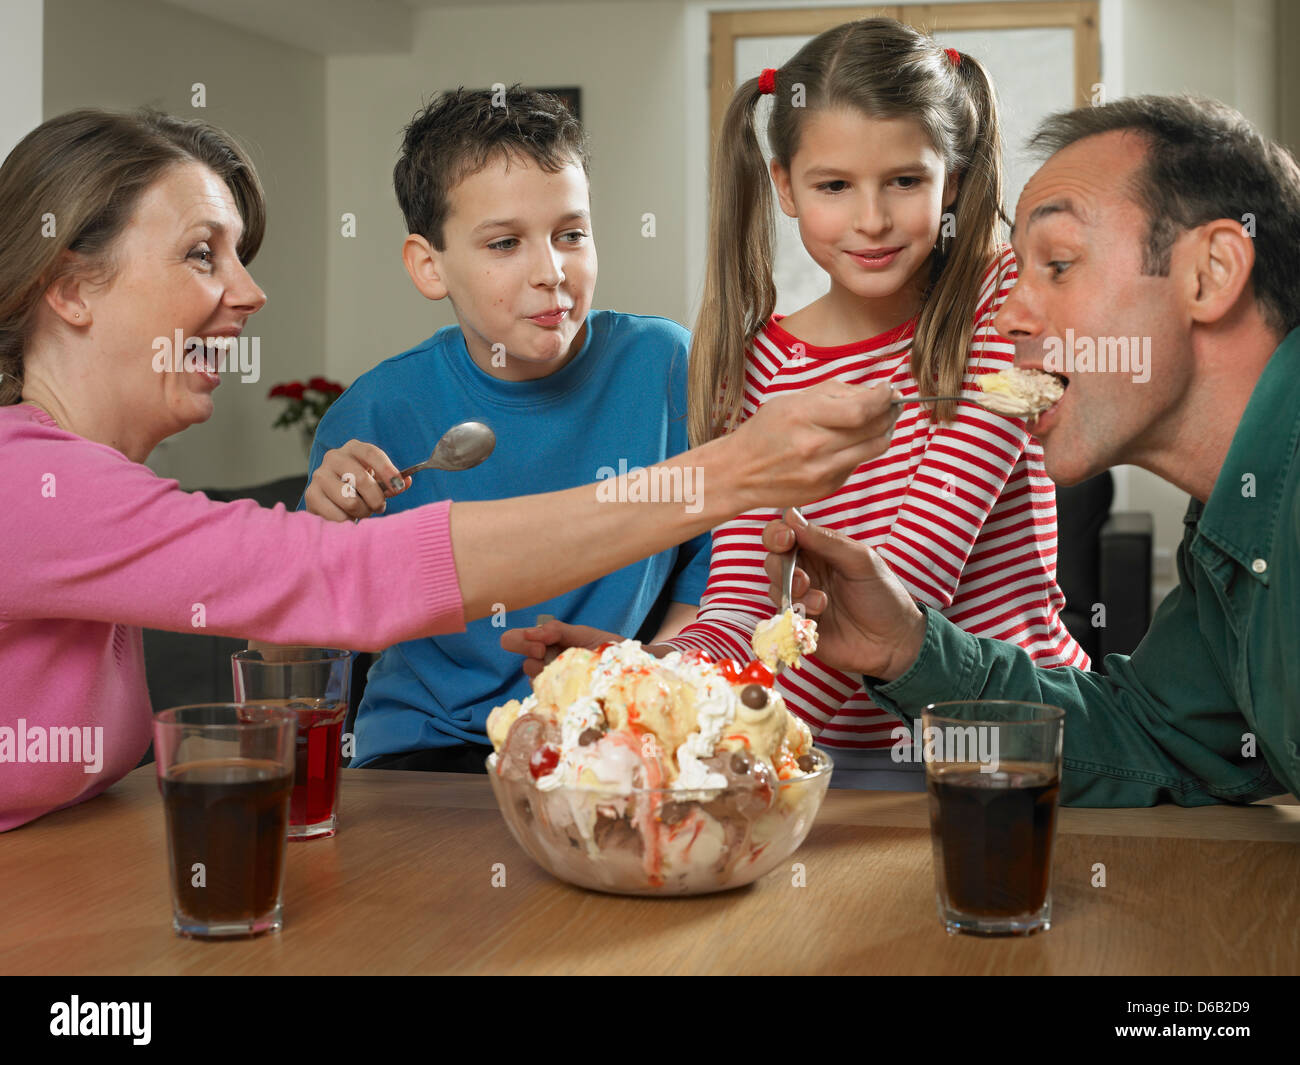 Family eating ice cream together Stock Photo: 55562453 - Alamy